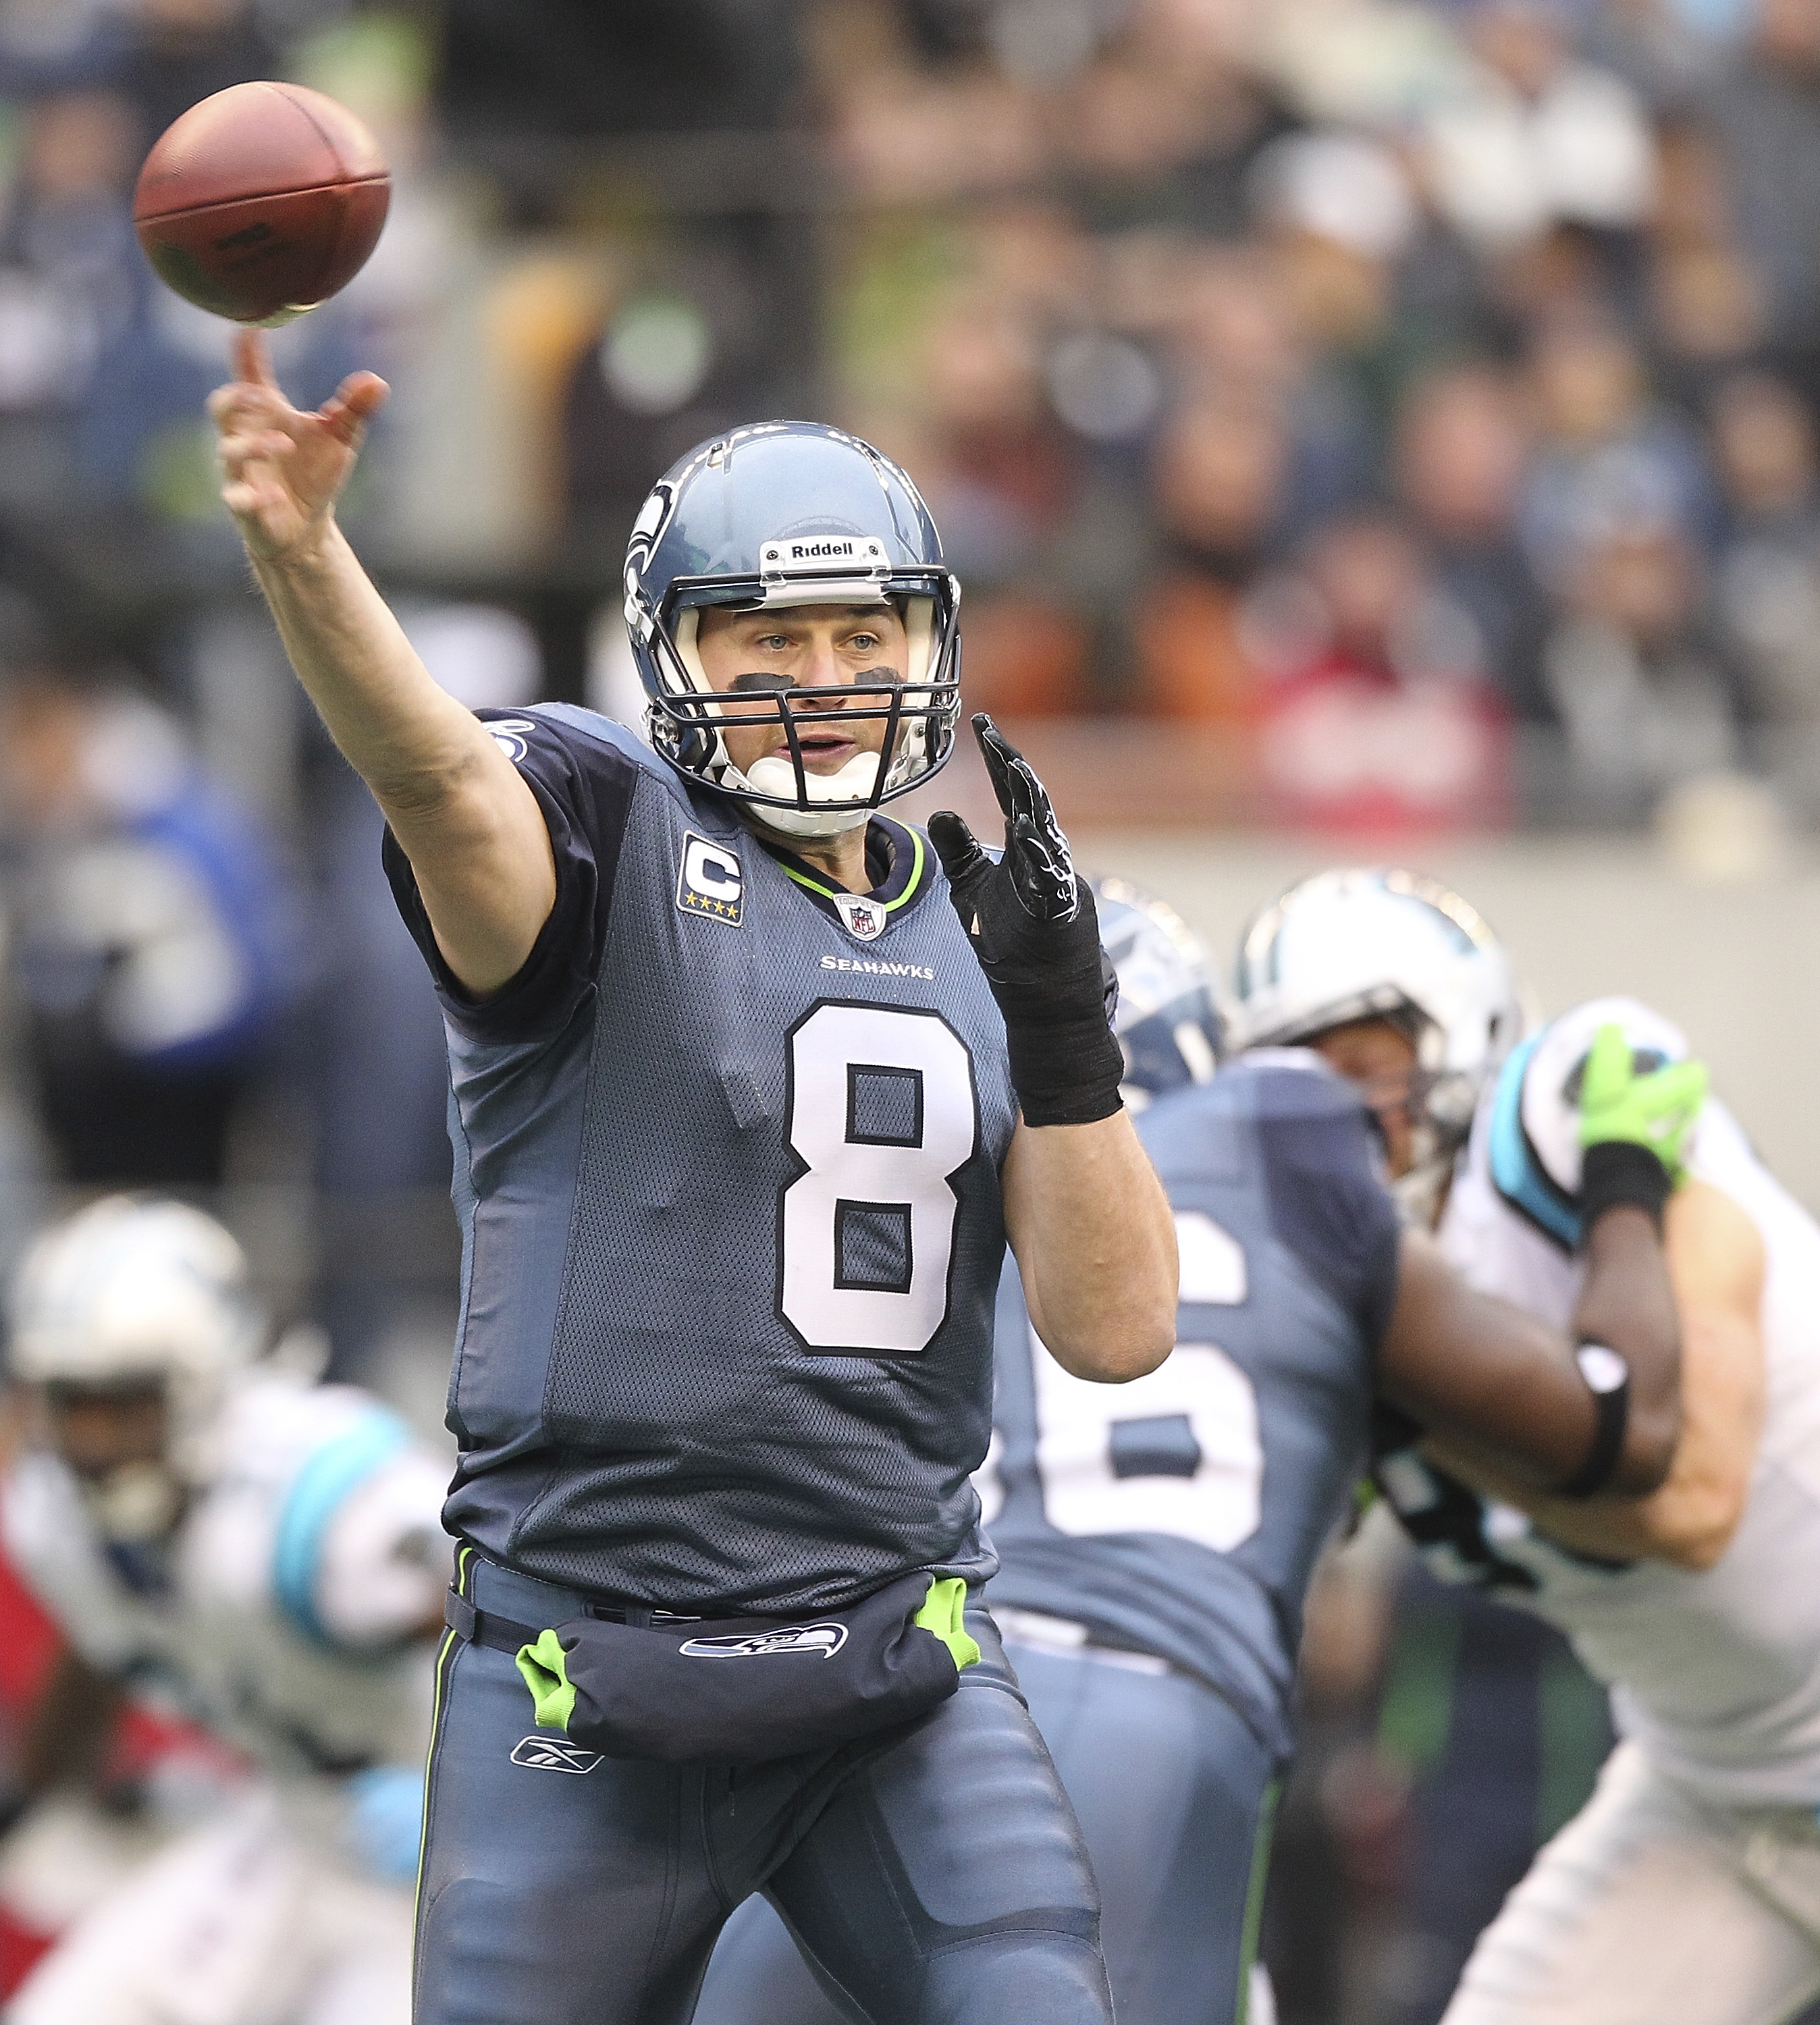 SEATTLE, WA - DECEMBER 05:  Quarterback Matt Hasselbeck #8 of the Seattle Seahawks passes against the Carolina Panthers at Qwest Field on December 5, 2010 in Seattle, Washington. (Photo by Otto Greule Jr/Getty Images)